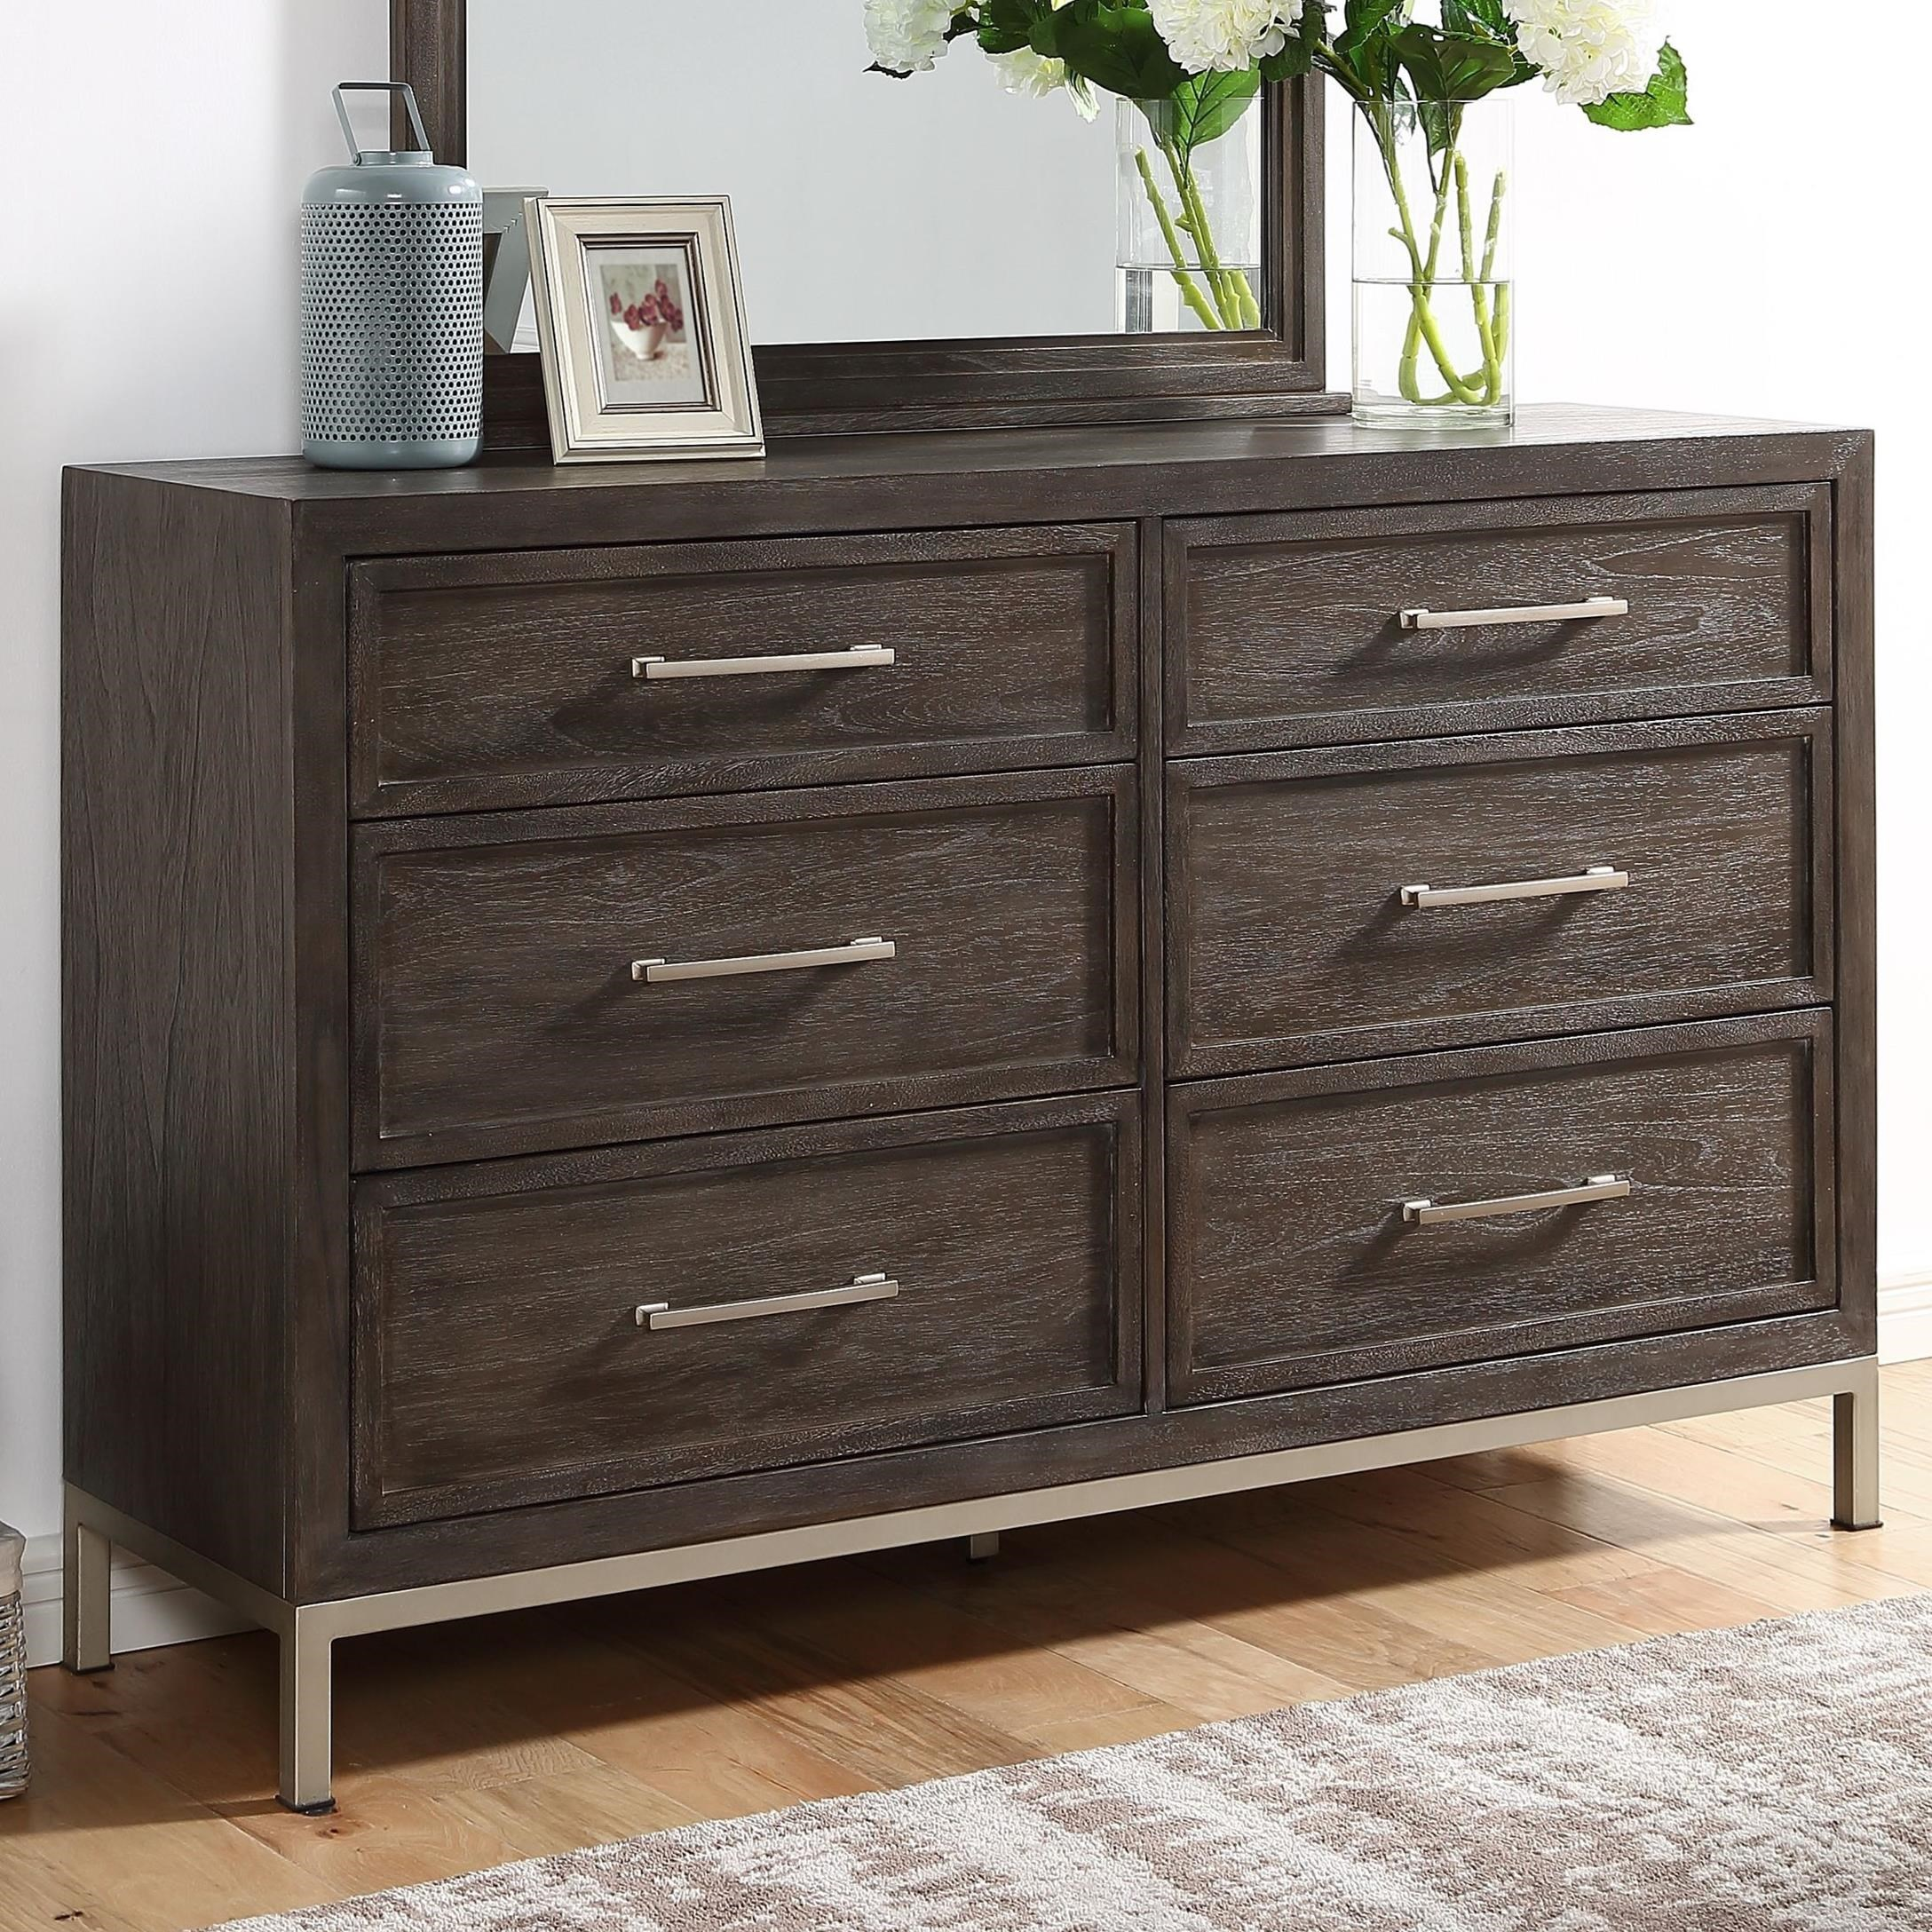 Broomfield Dresser by Steve Silver at Northeast Factory Direct